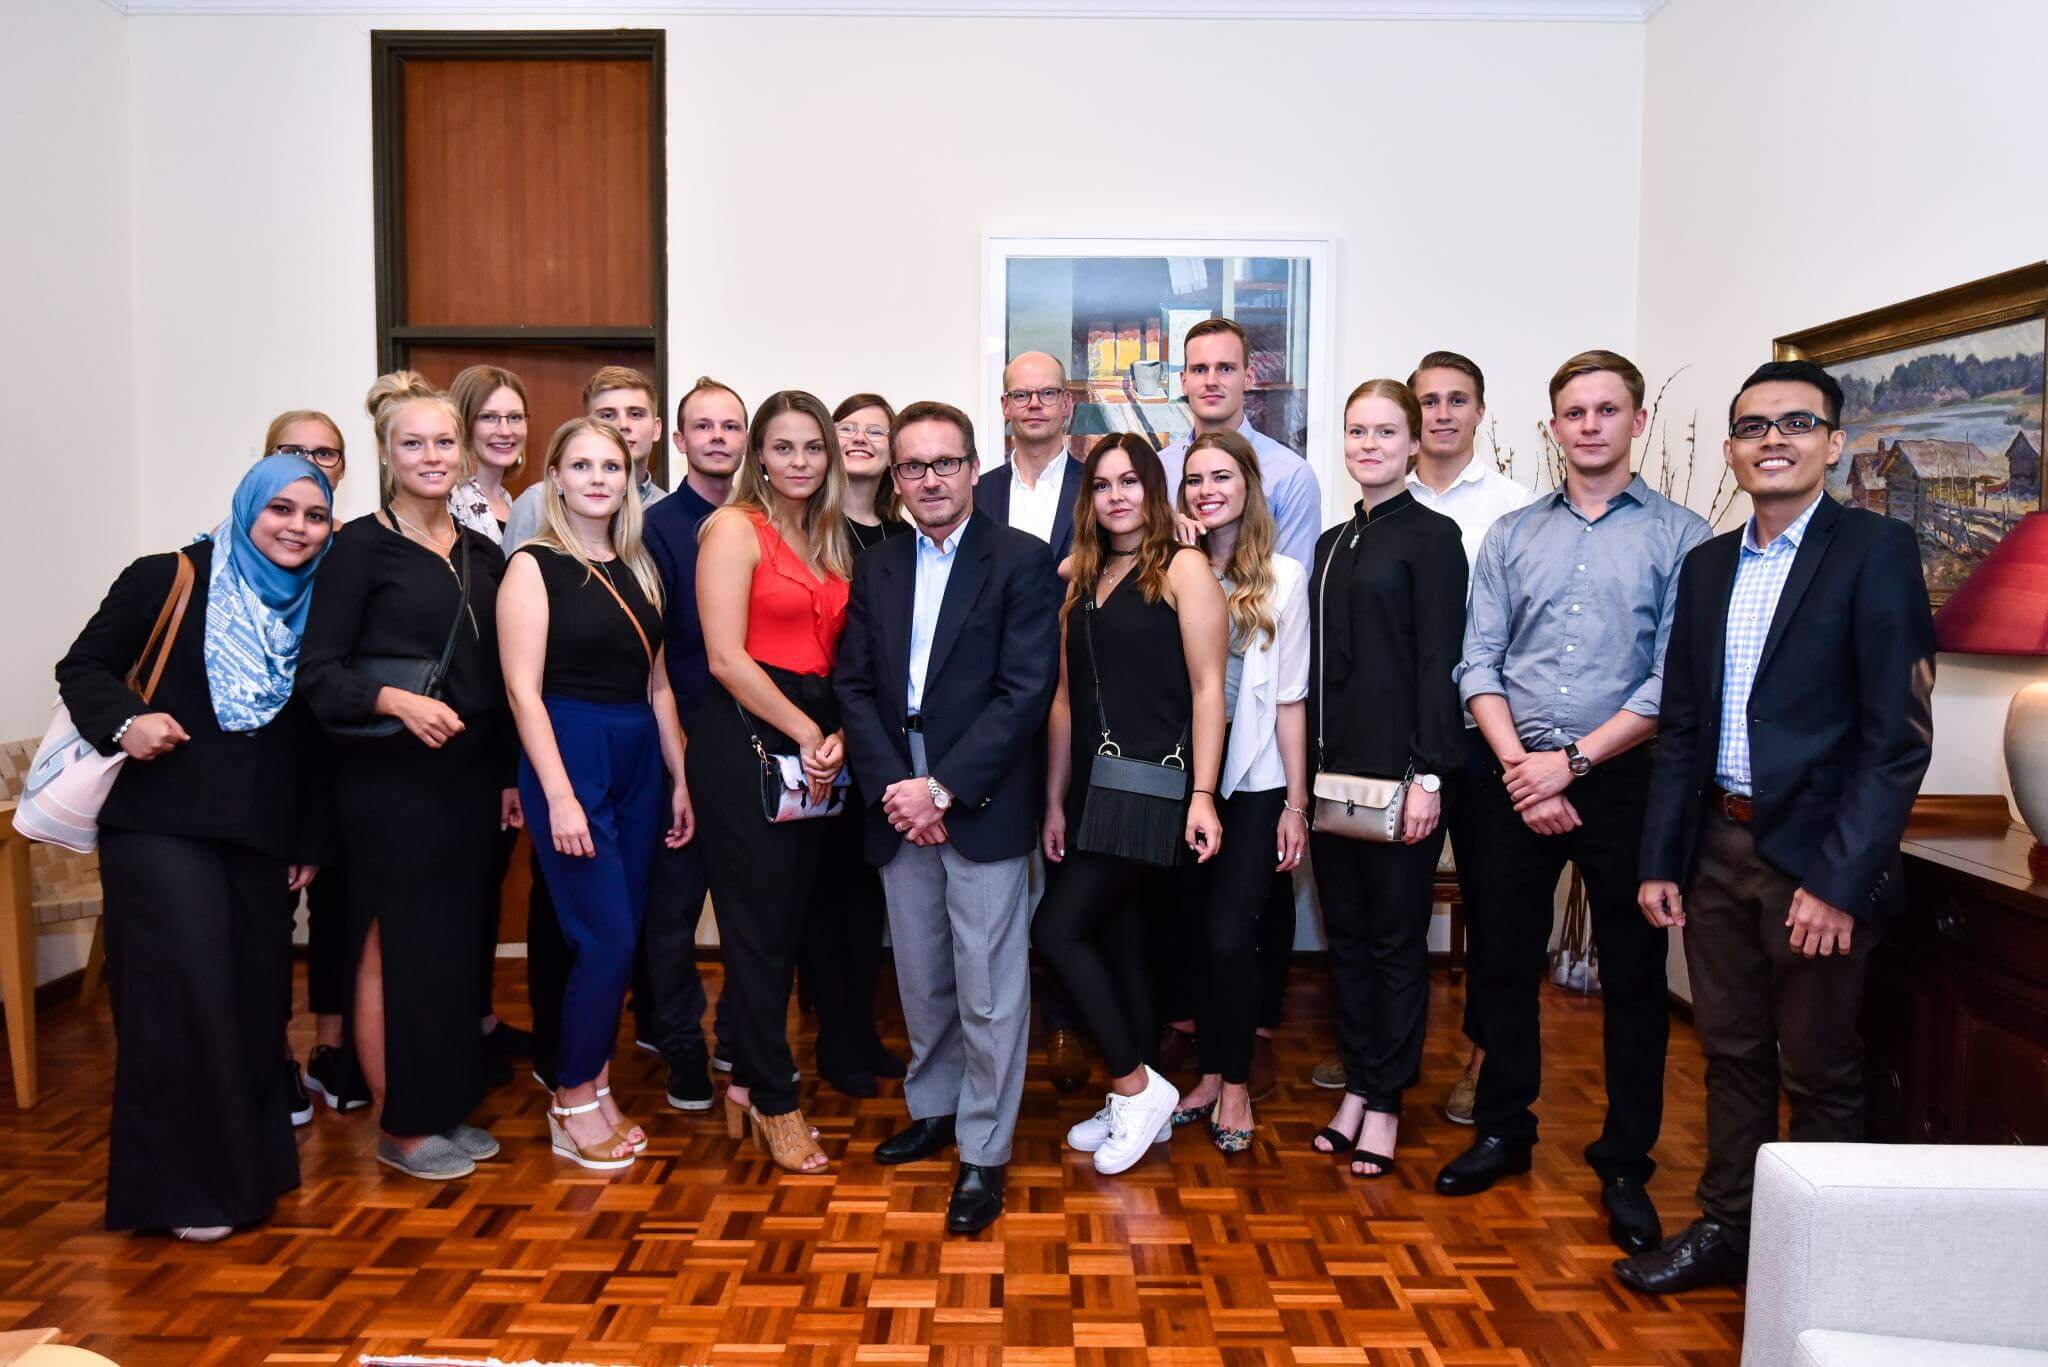 A group picture of Finnish students at an ambassy building in Malaysia.